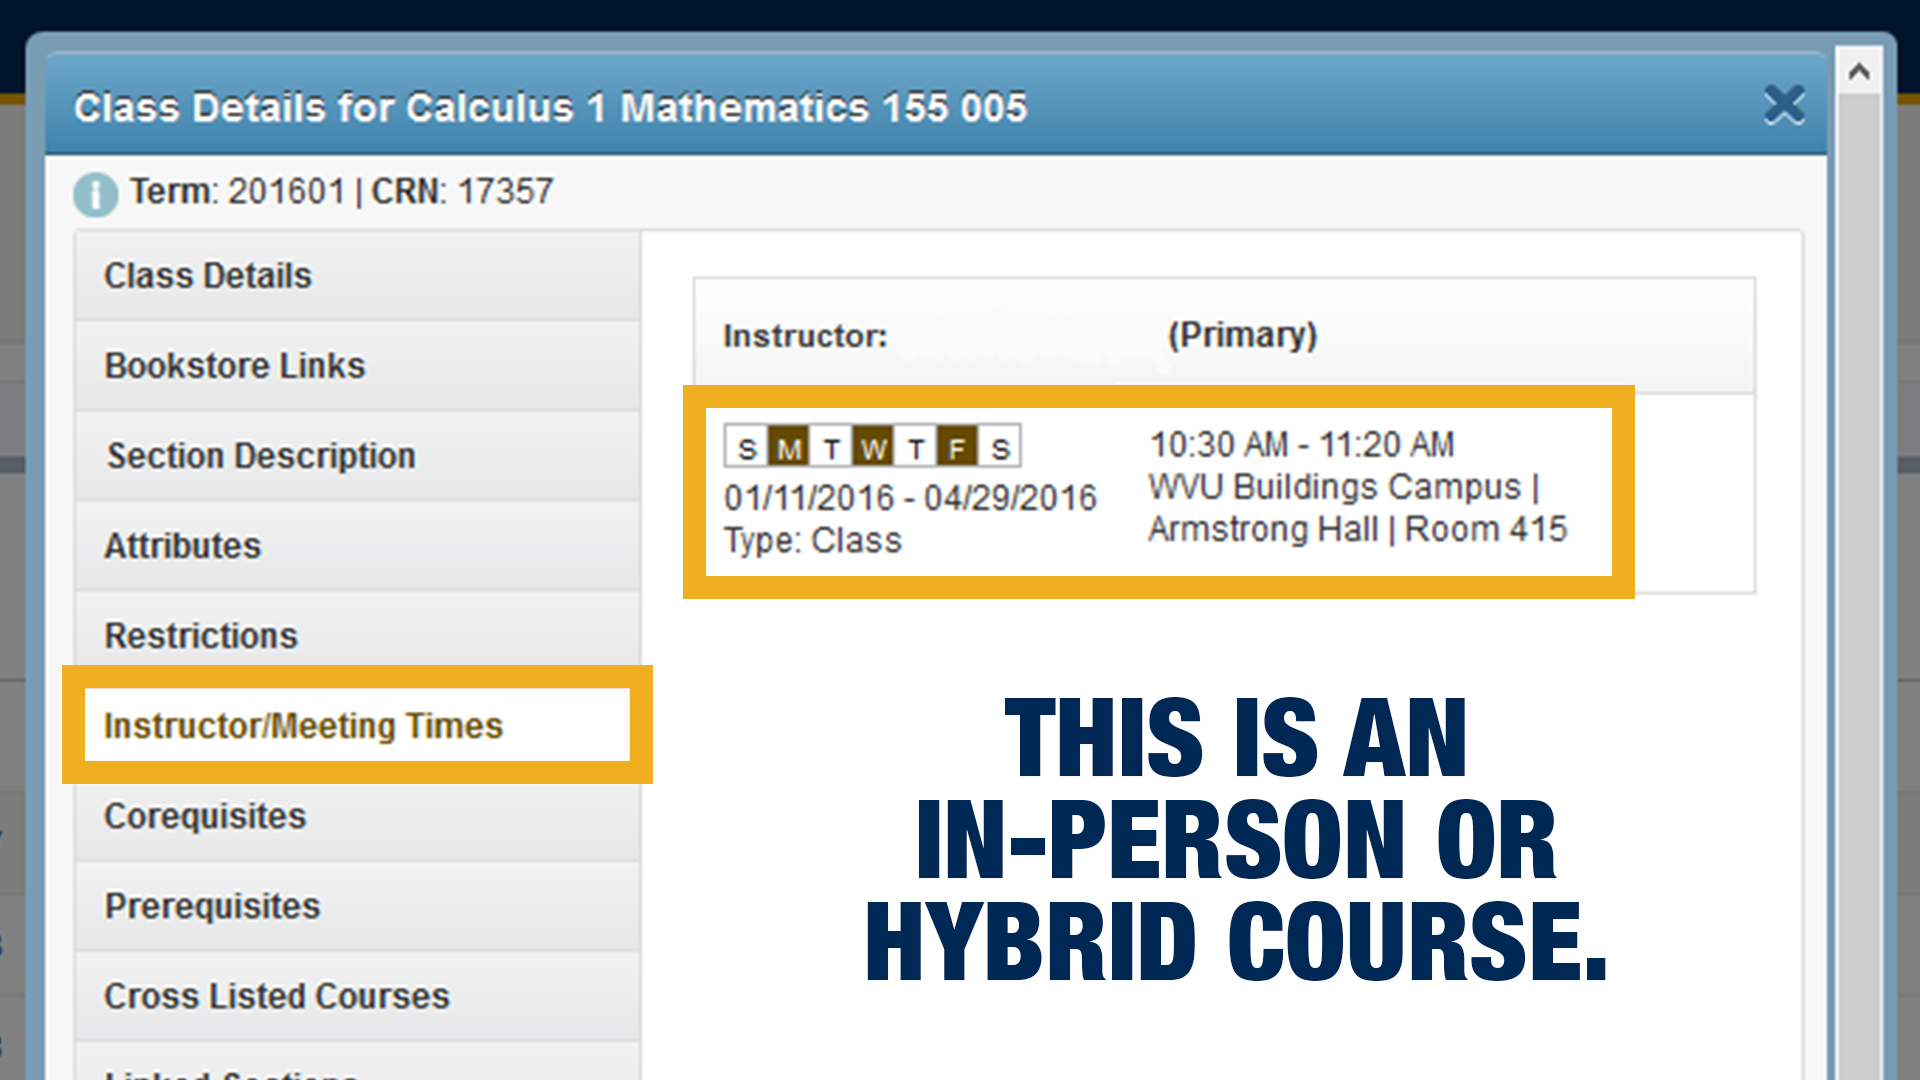 Screenshot of what an in-person or hybrid course